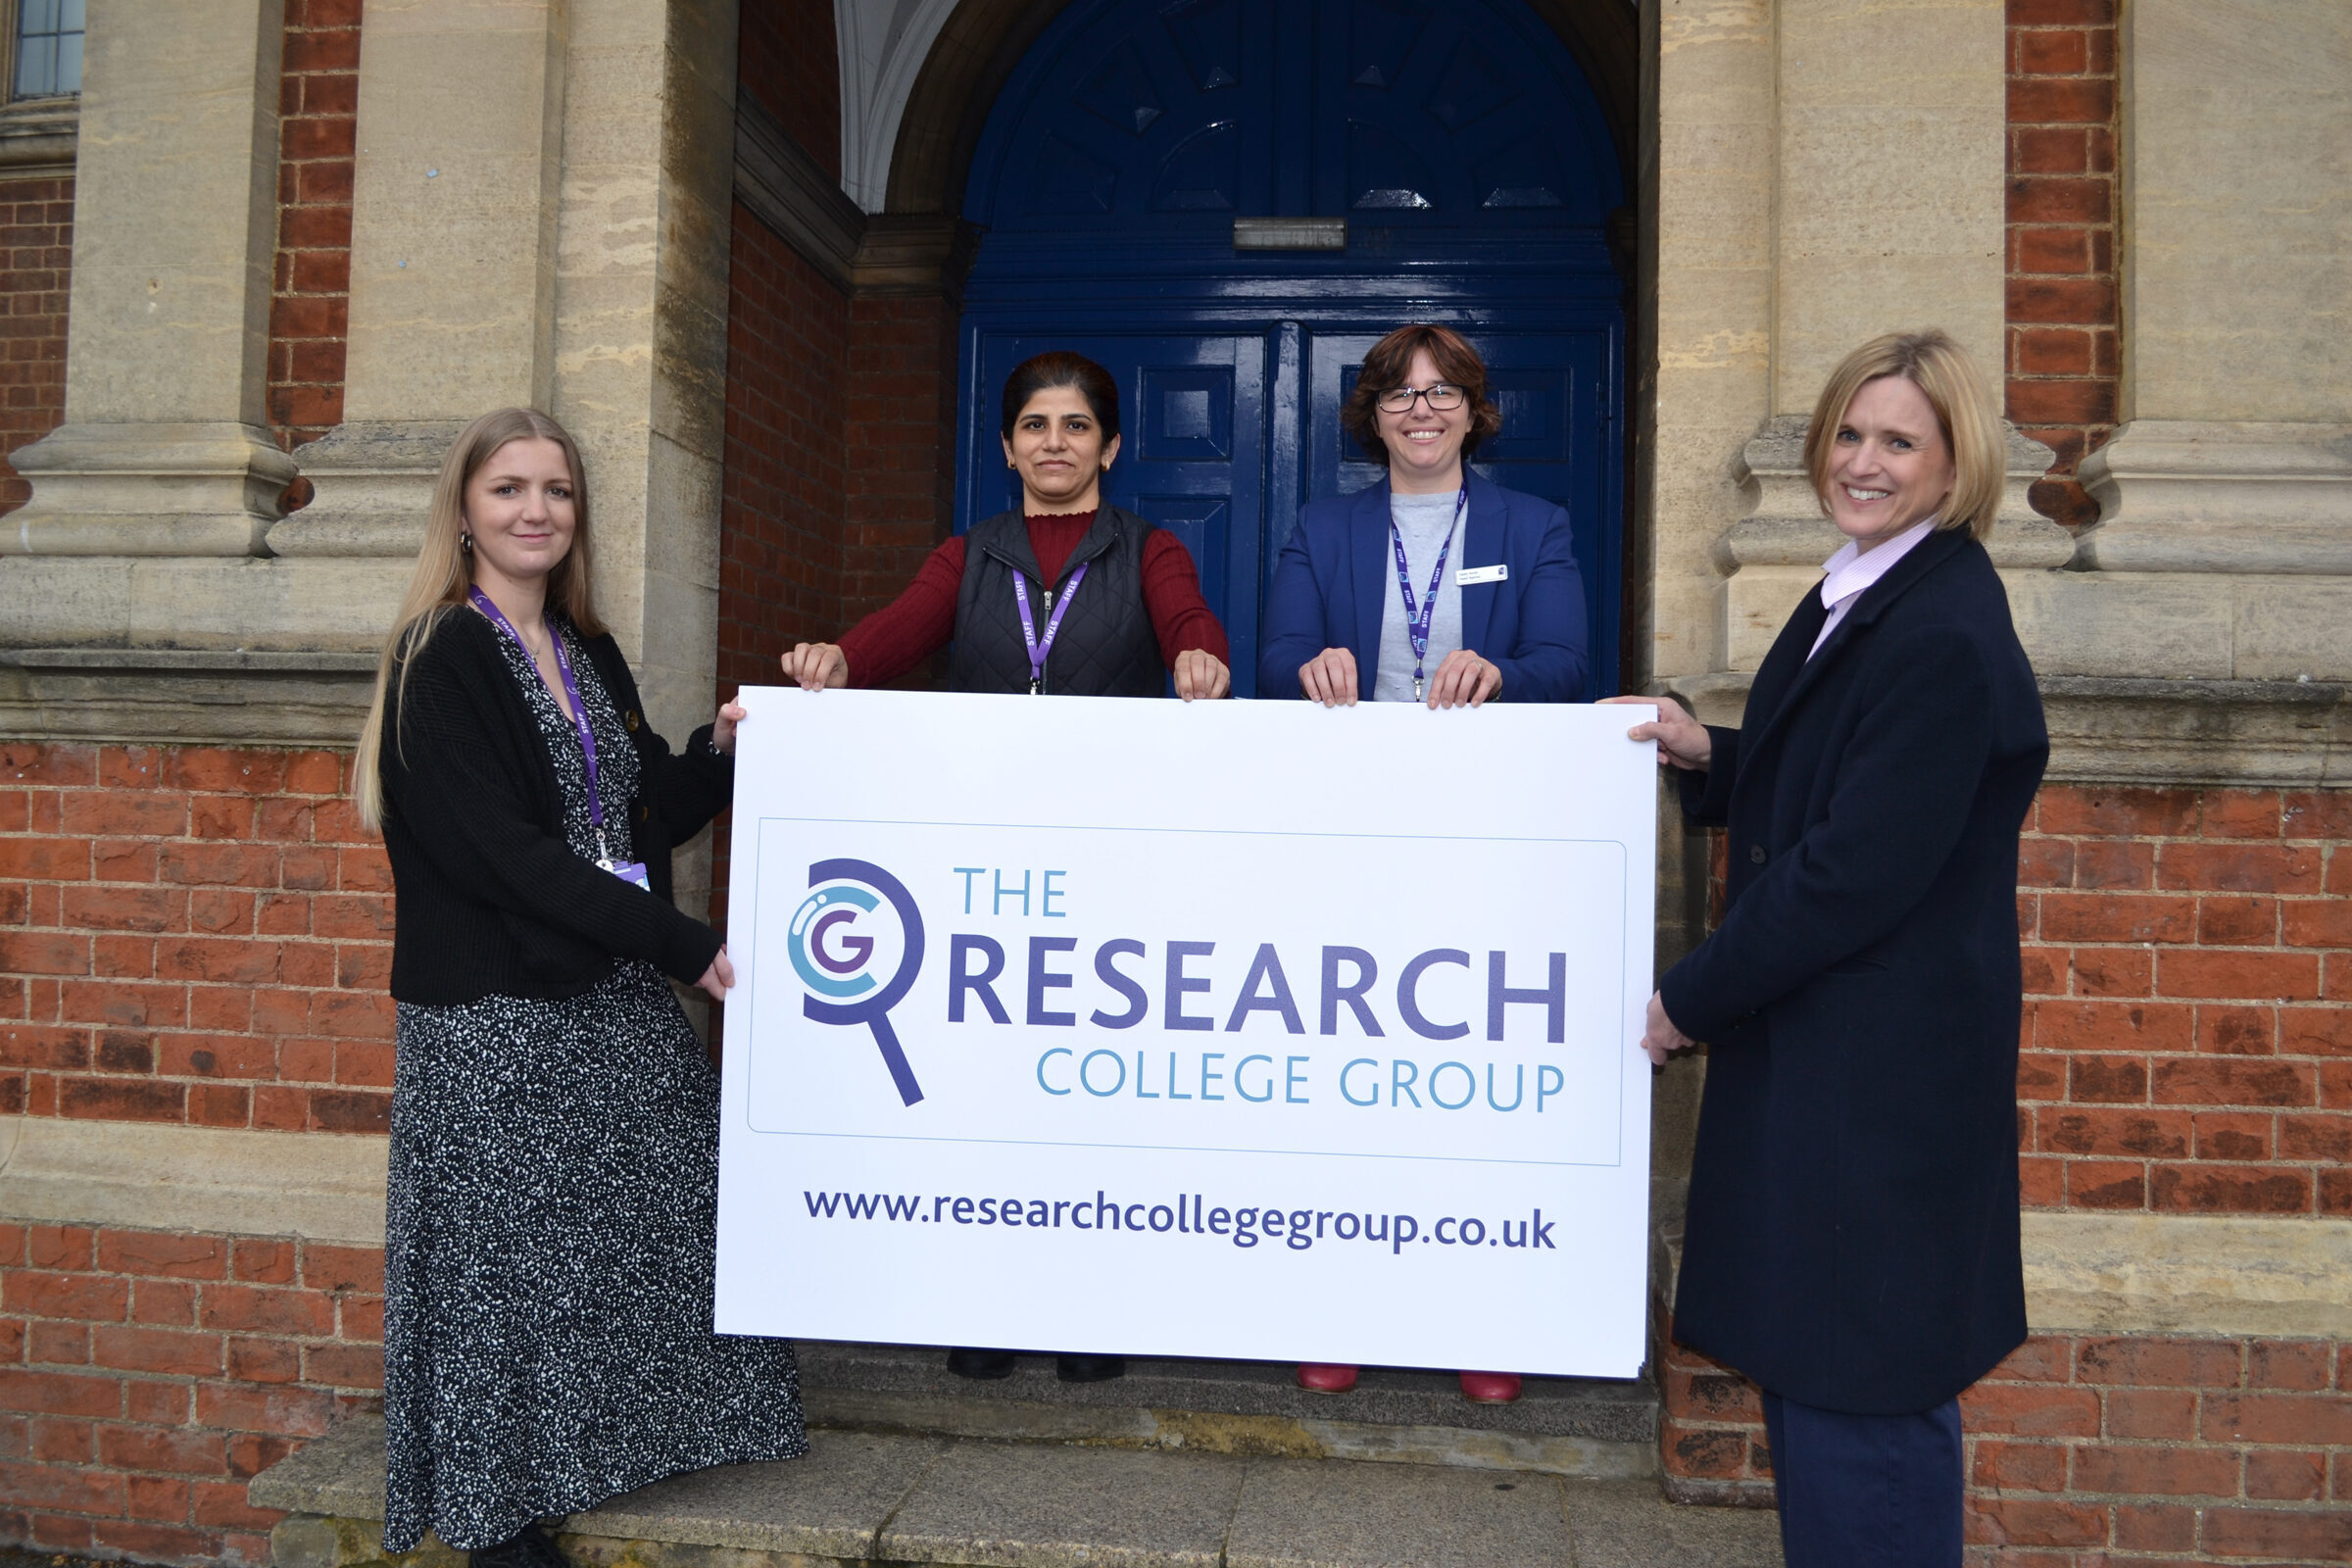 Leading the way in research for college improvements